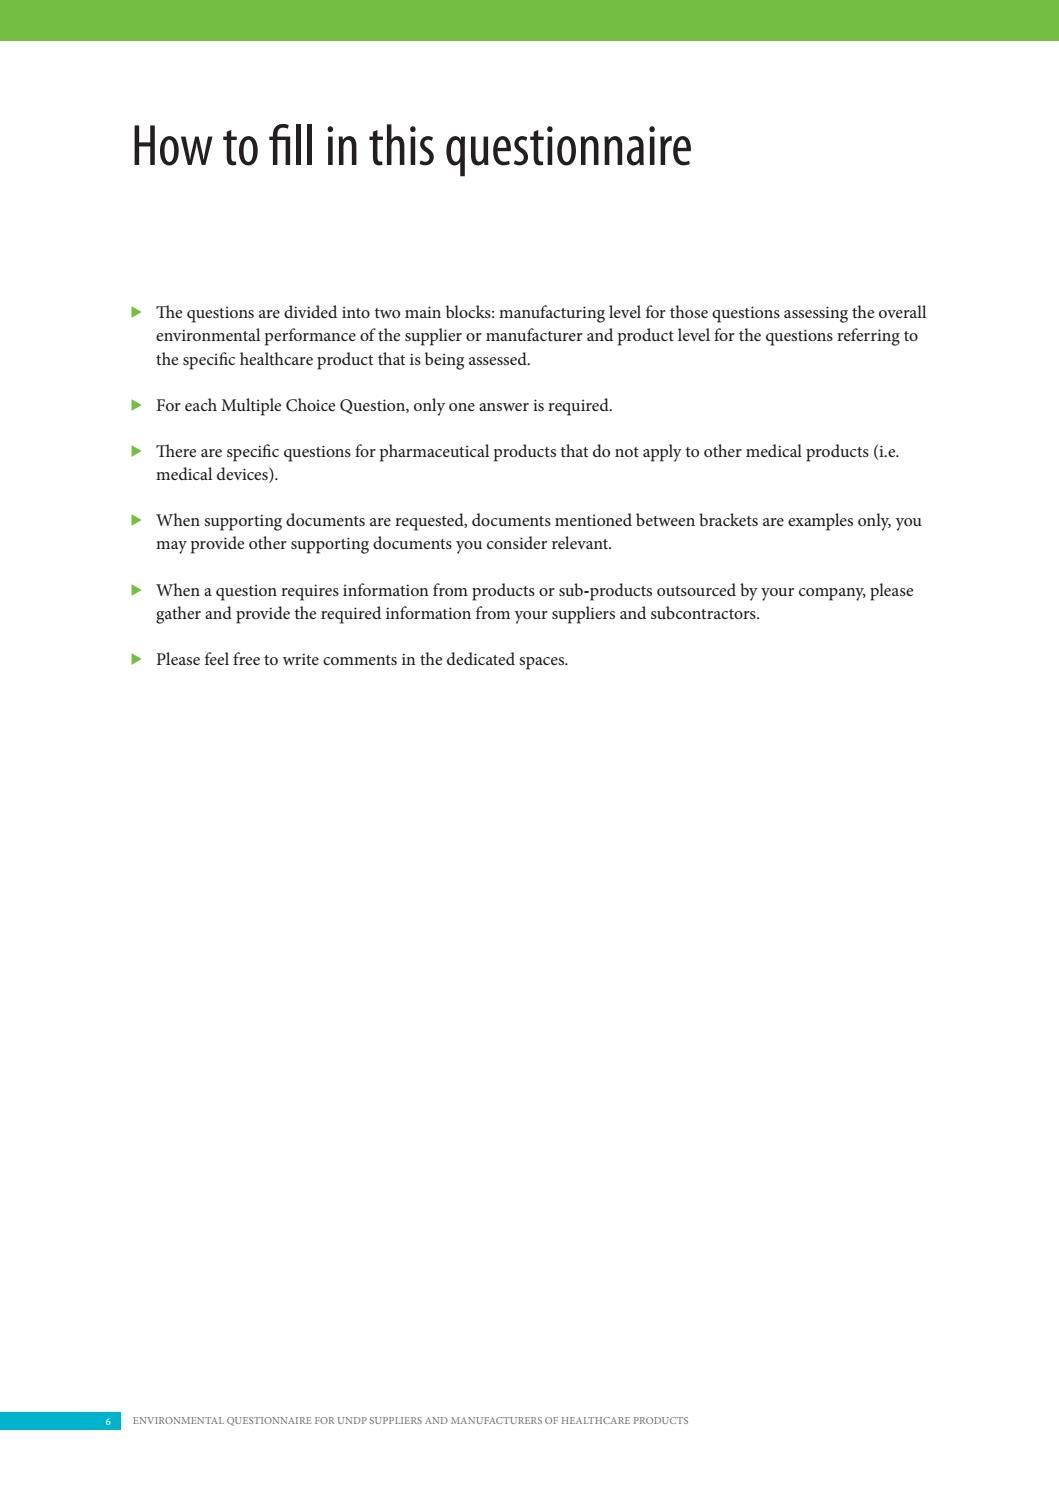 Environmental Questionnaire for UNDP Suppliers and